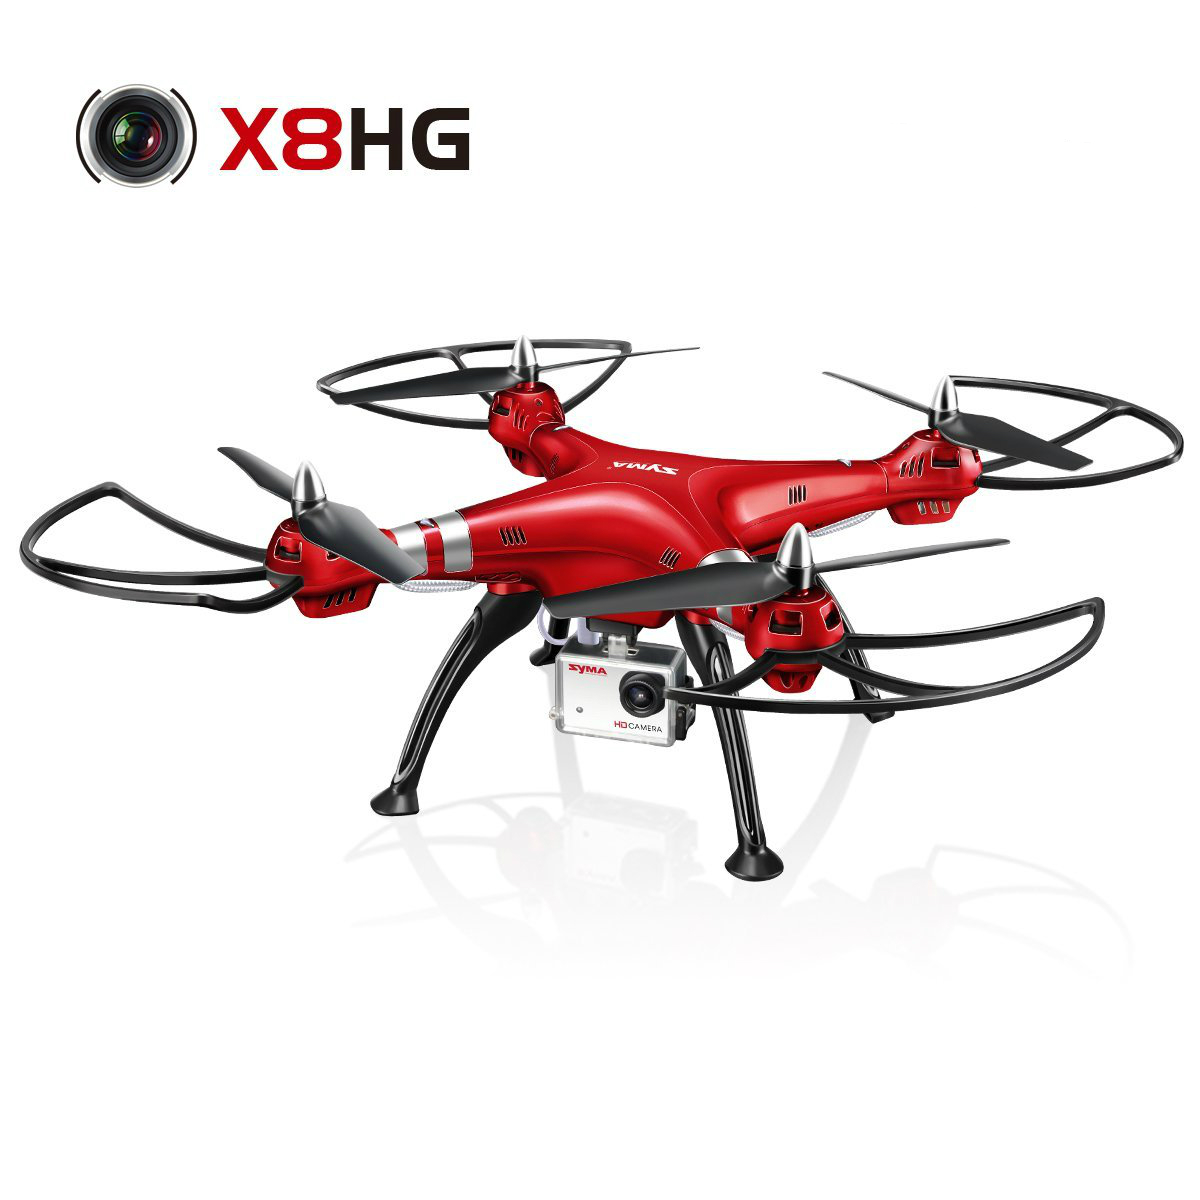 Syma X8HG 8 0MP HD Camera Drone with Altitude Hold Headless Mode 3D Flips RC Quadcopter